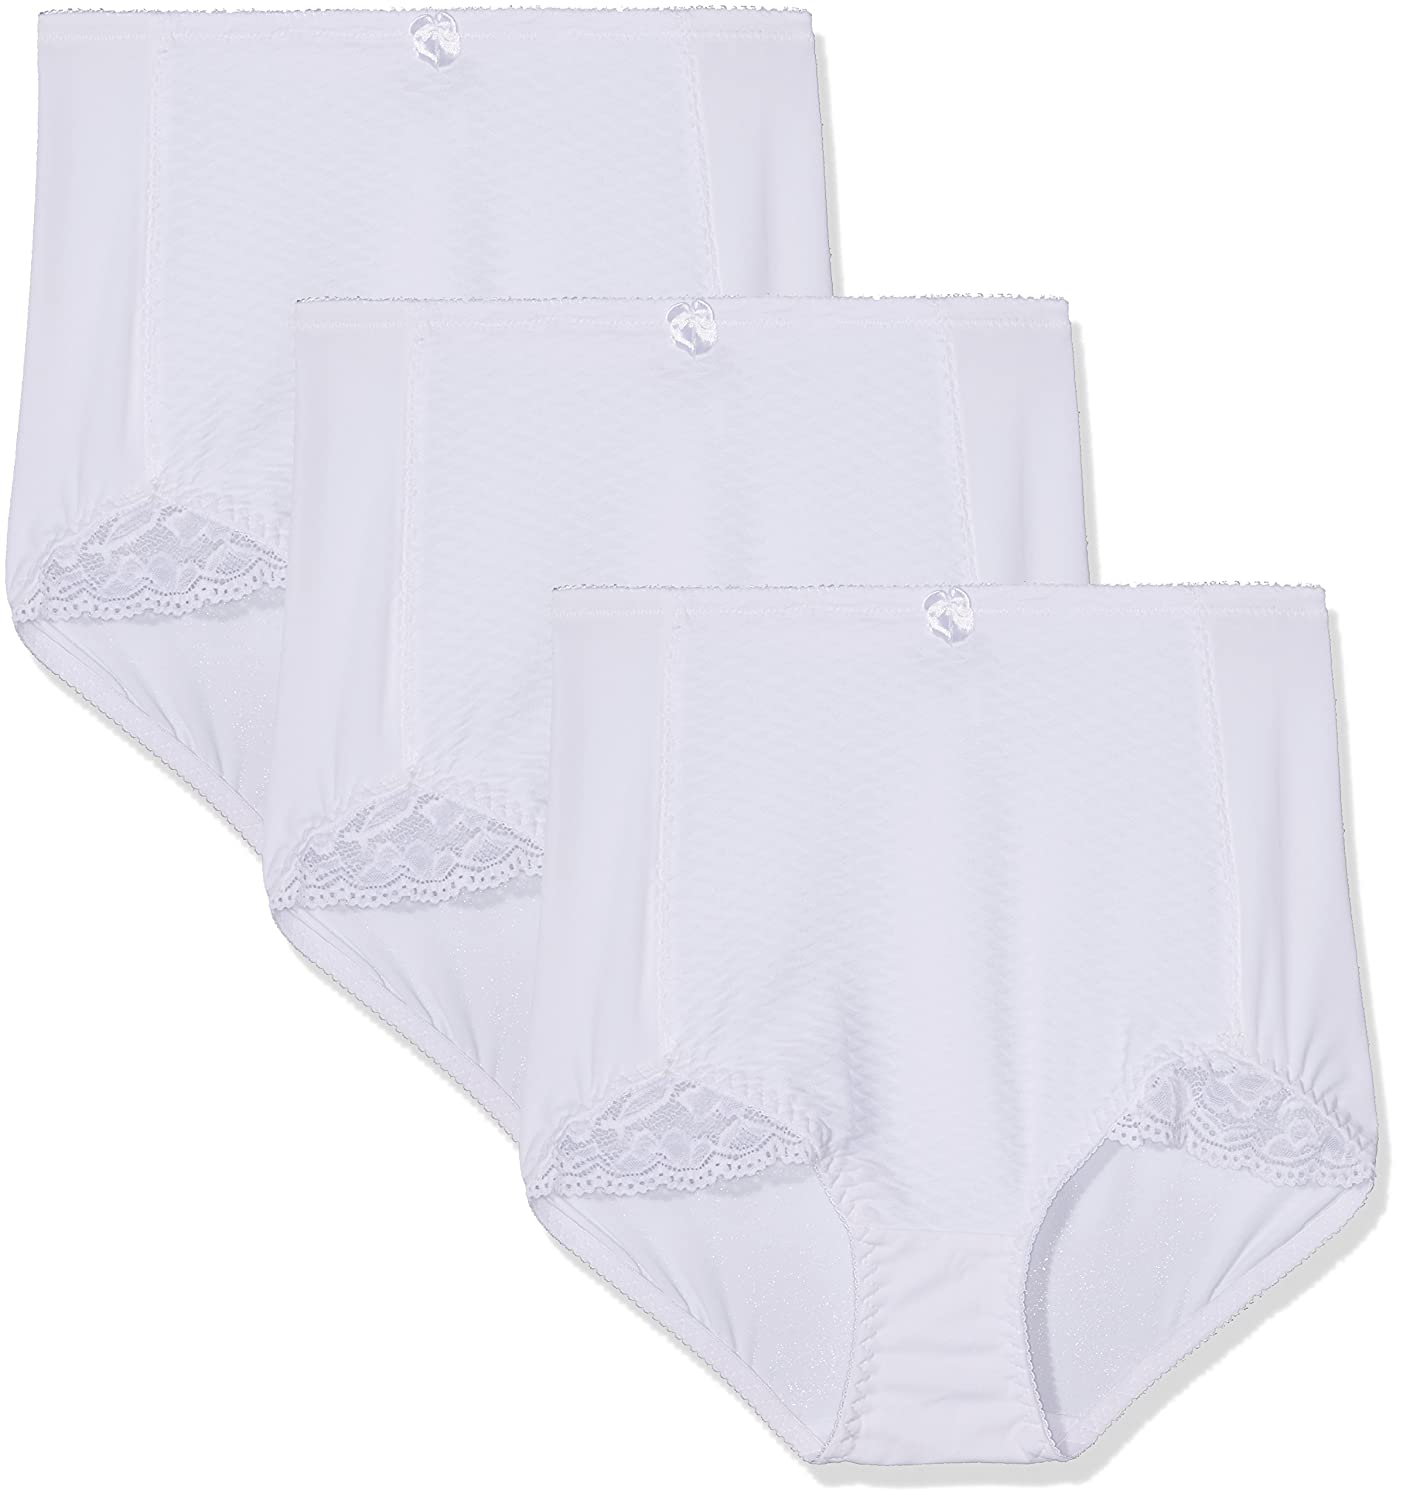 FM London Women's Light Control Briefs Knickers Pack of 3 LCBRIEF